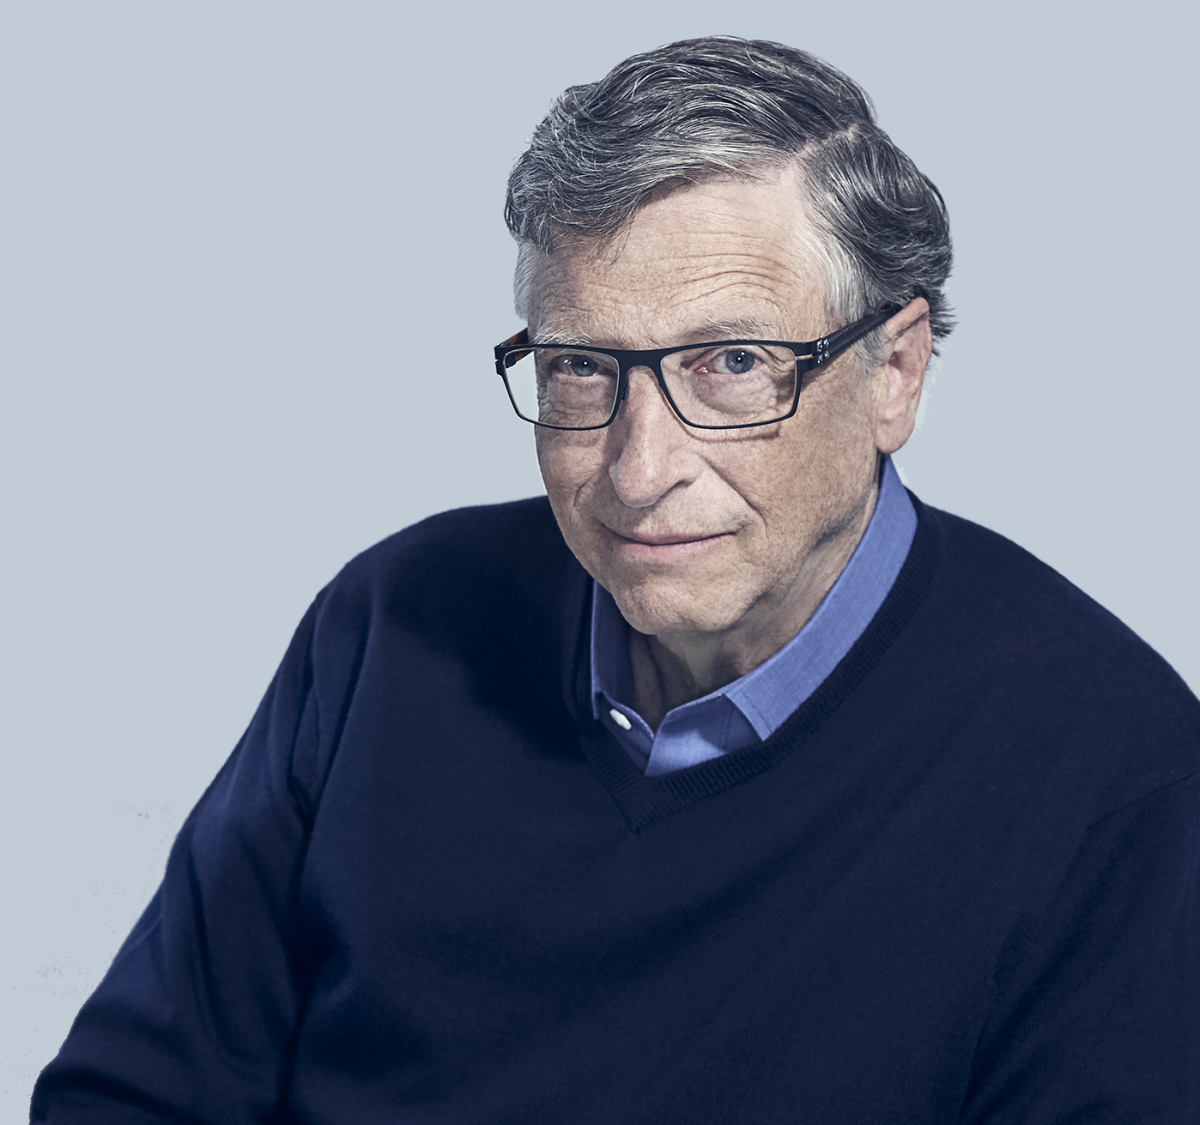 Bill Gates: How we'll invent the future